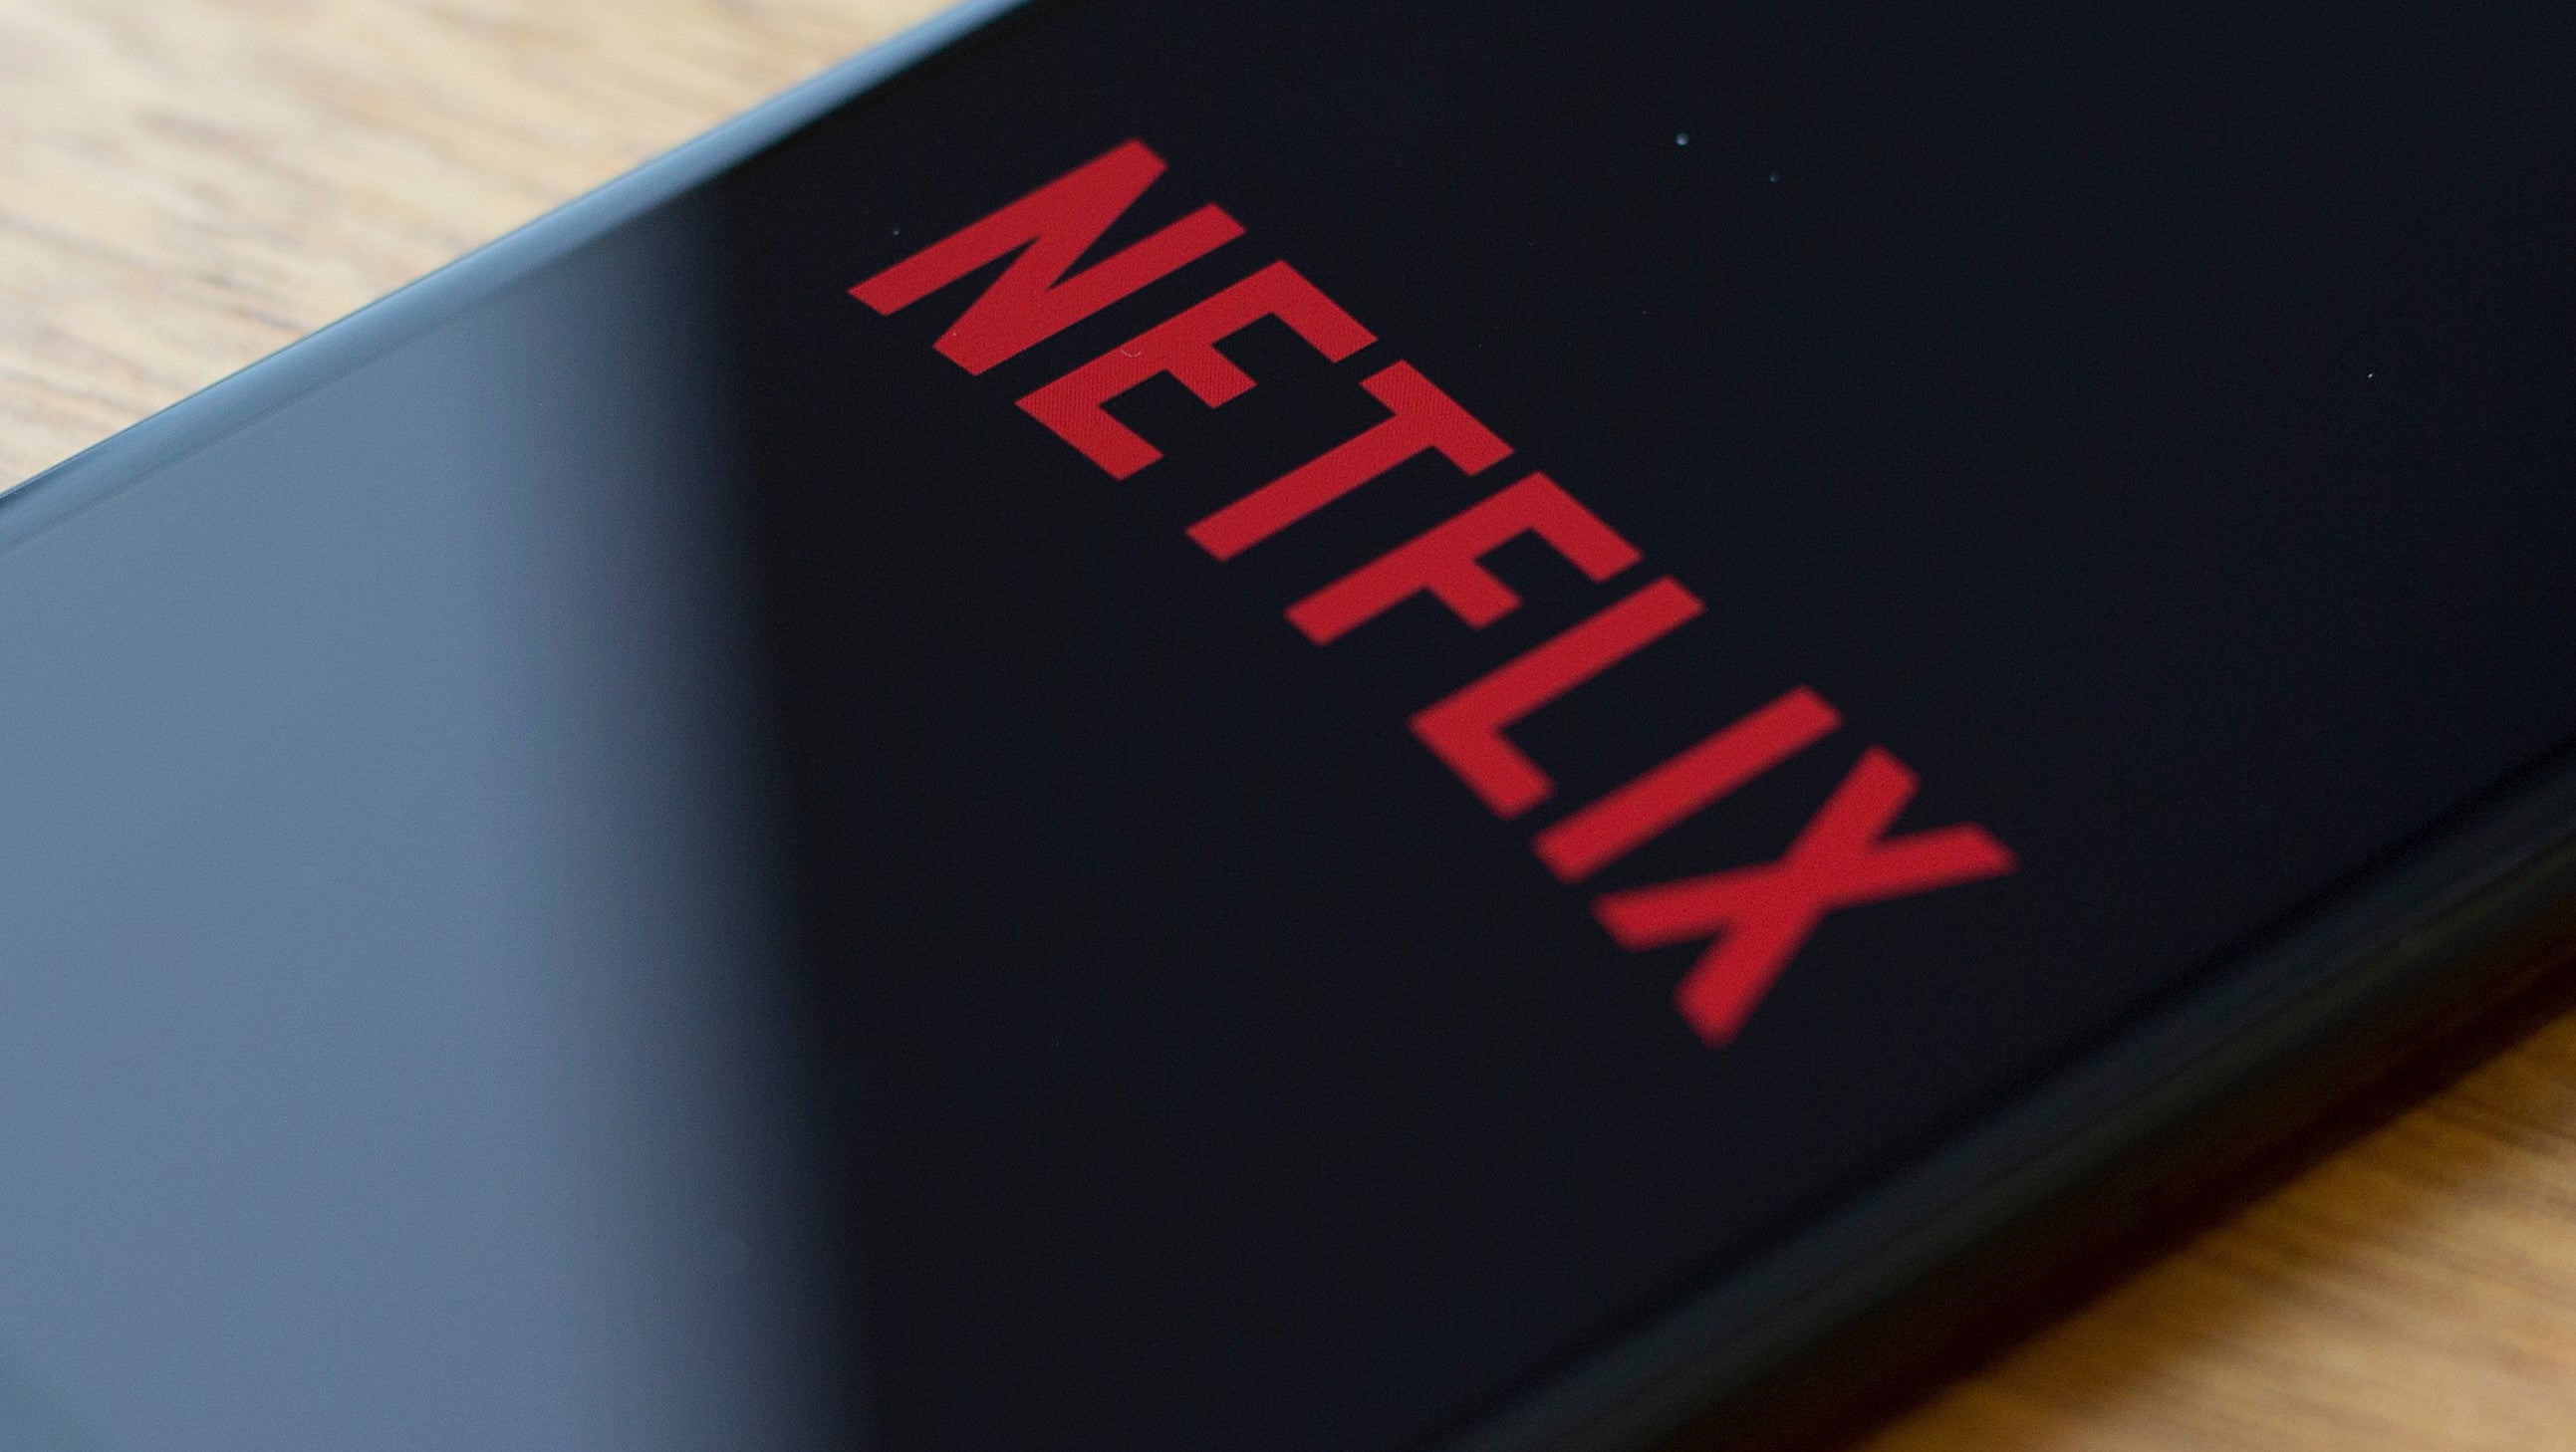 The EU Wants Netflix To Lower Streaming Video Quality To Prevent The Internet From Breaking